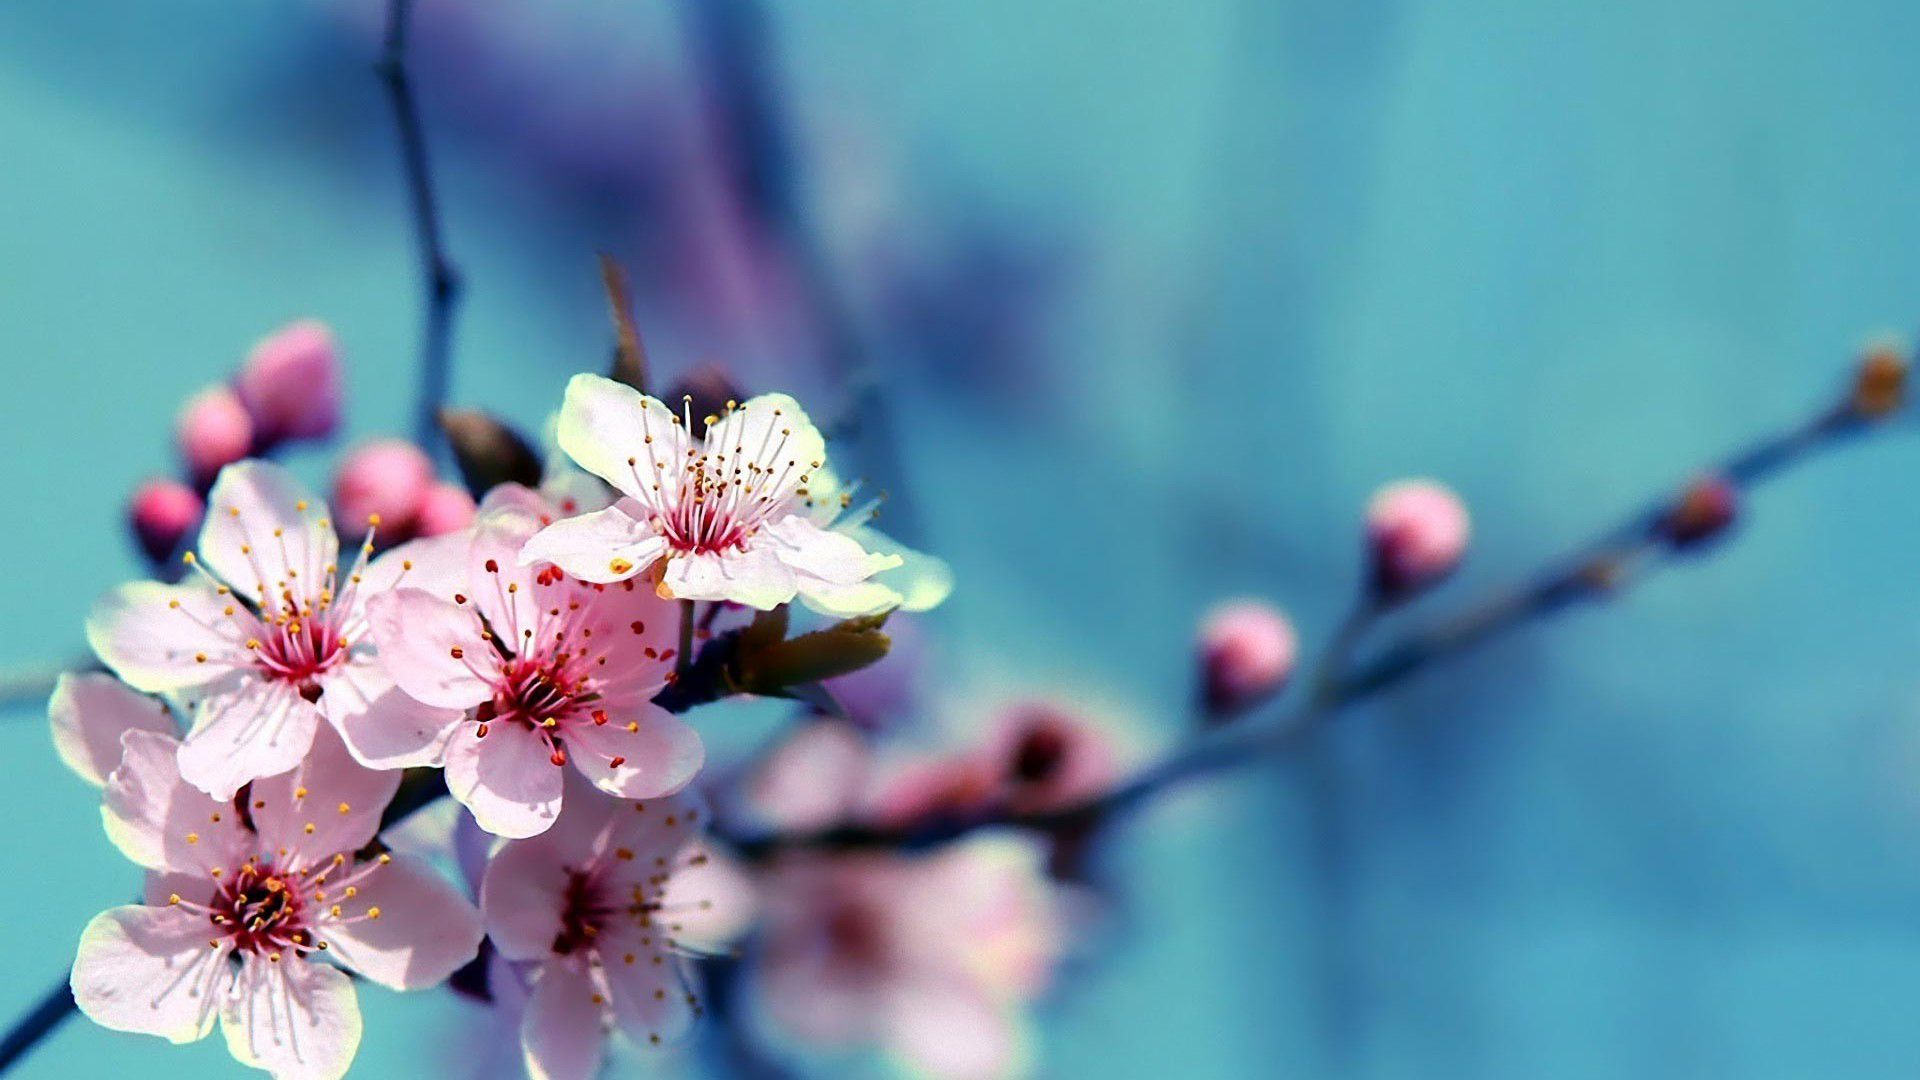 Flowers Cherry Blossom Wallpapers 1920x1080